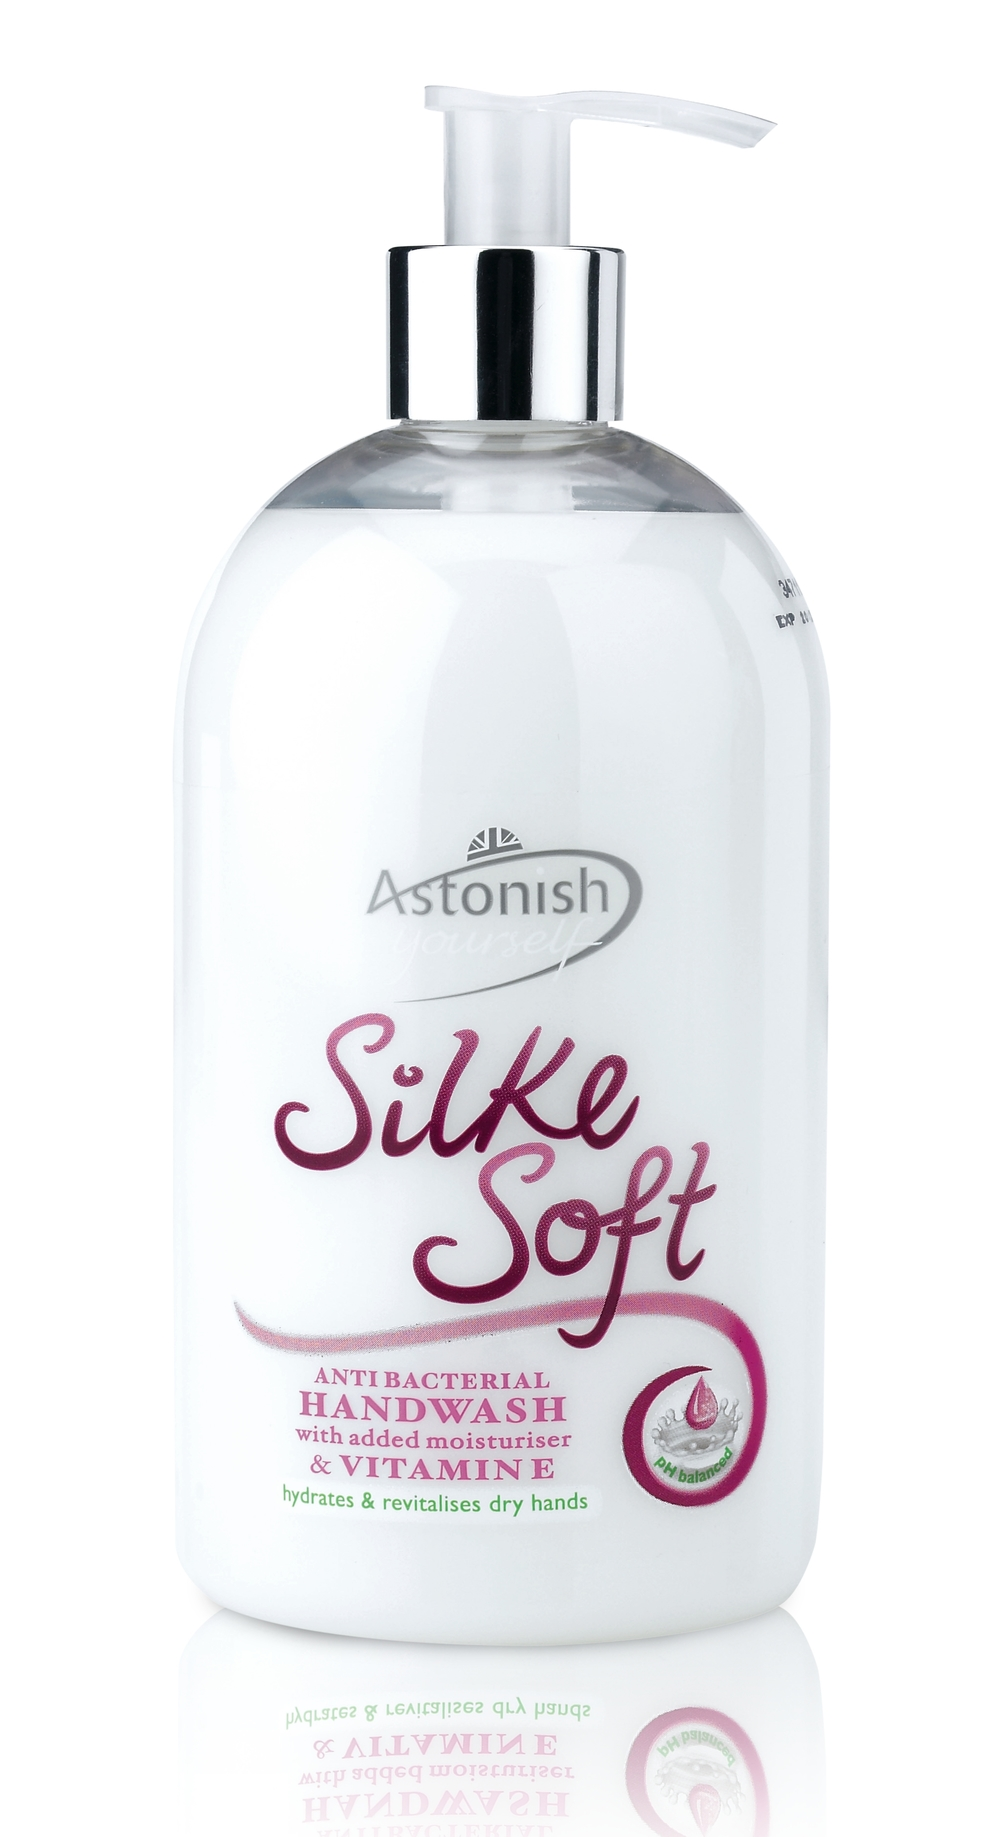 Astonish Silke Soft Handwash 500ml.jpg